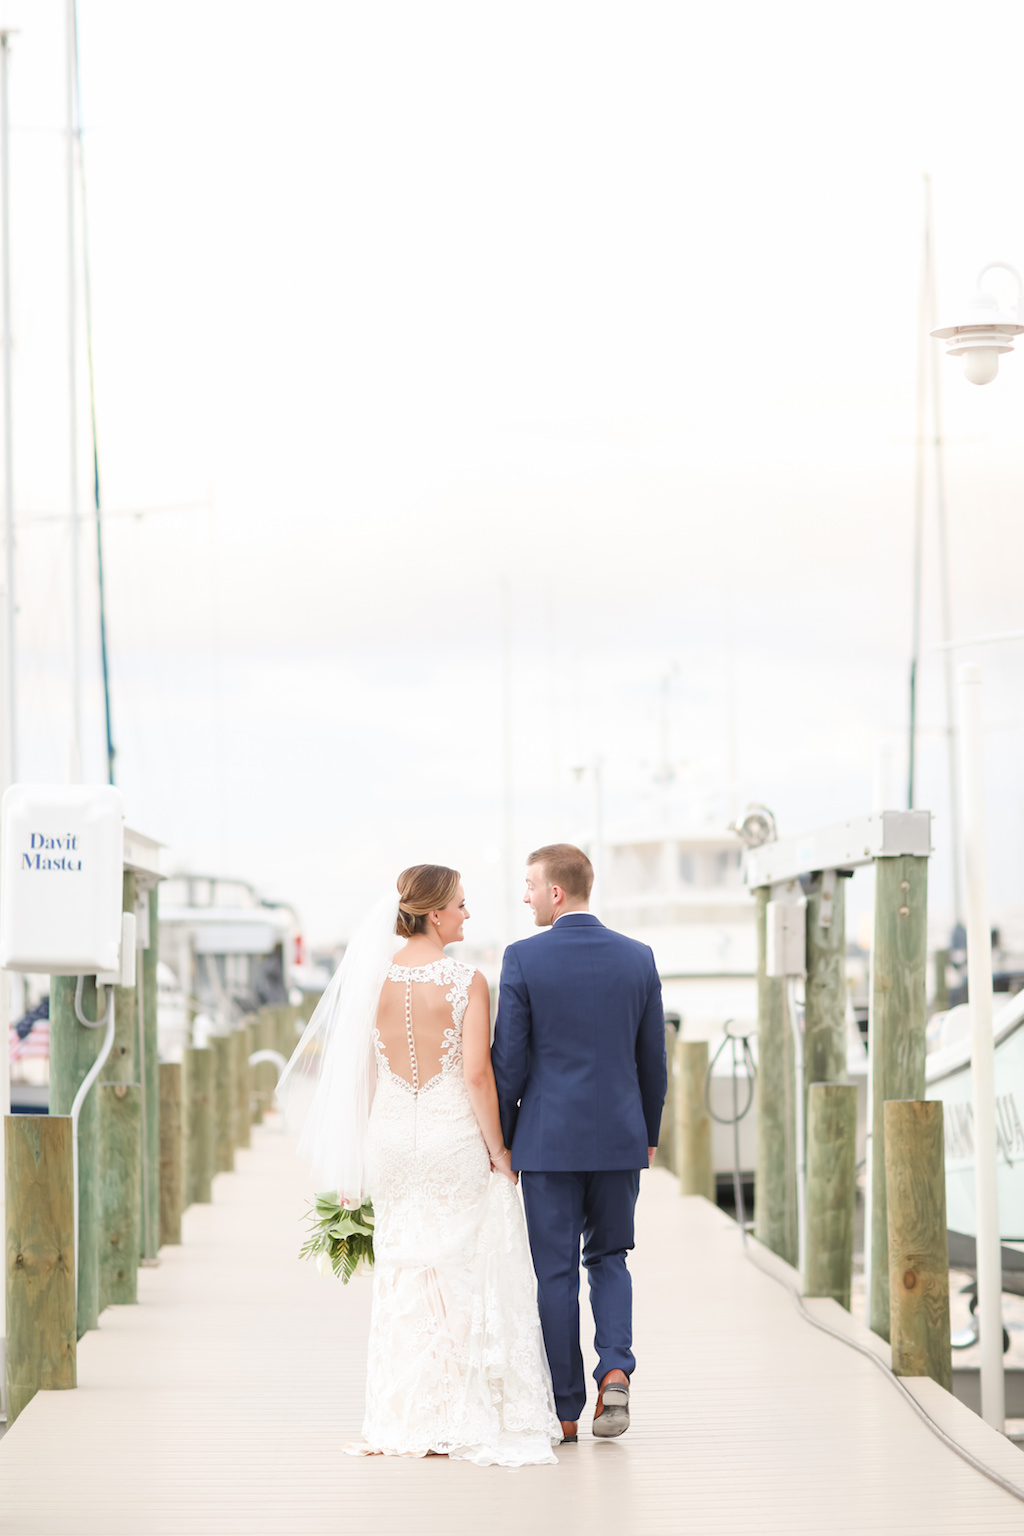 Tampa Bay Bride and Groom Yacht Pier Wedding Portrait | Photographer LifeLong Photography Studios | St. Pete Beach Waterfront Wedding Venue Isla Del Sol Yacht and Country Club